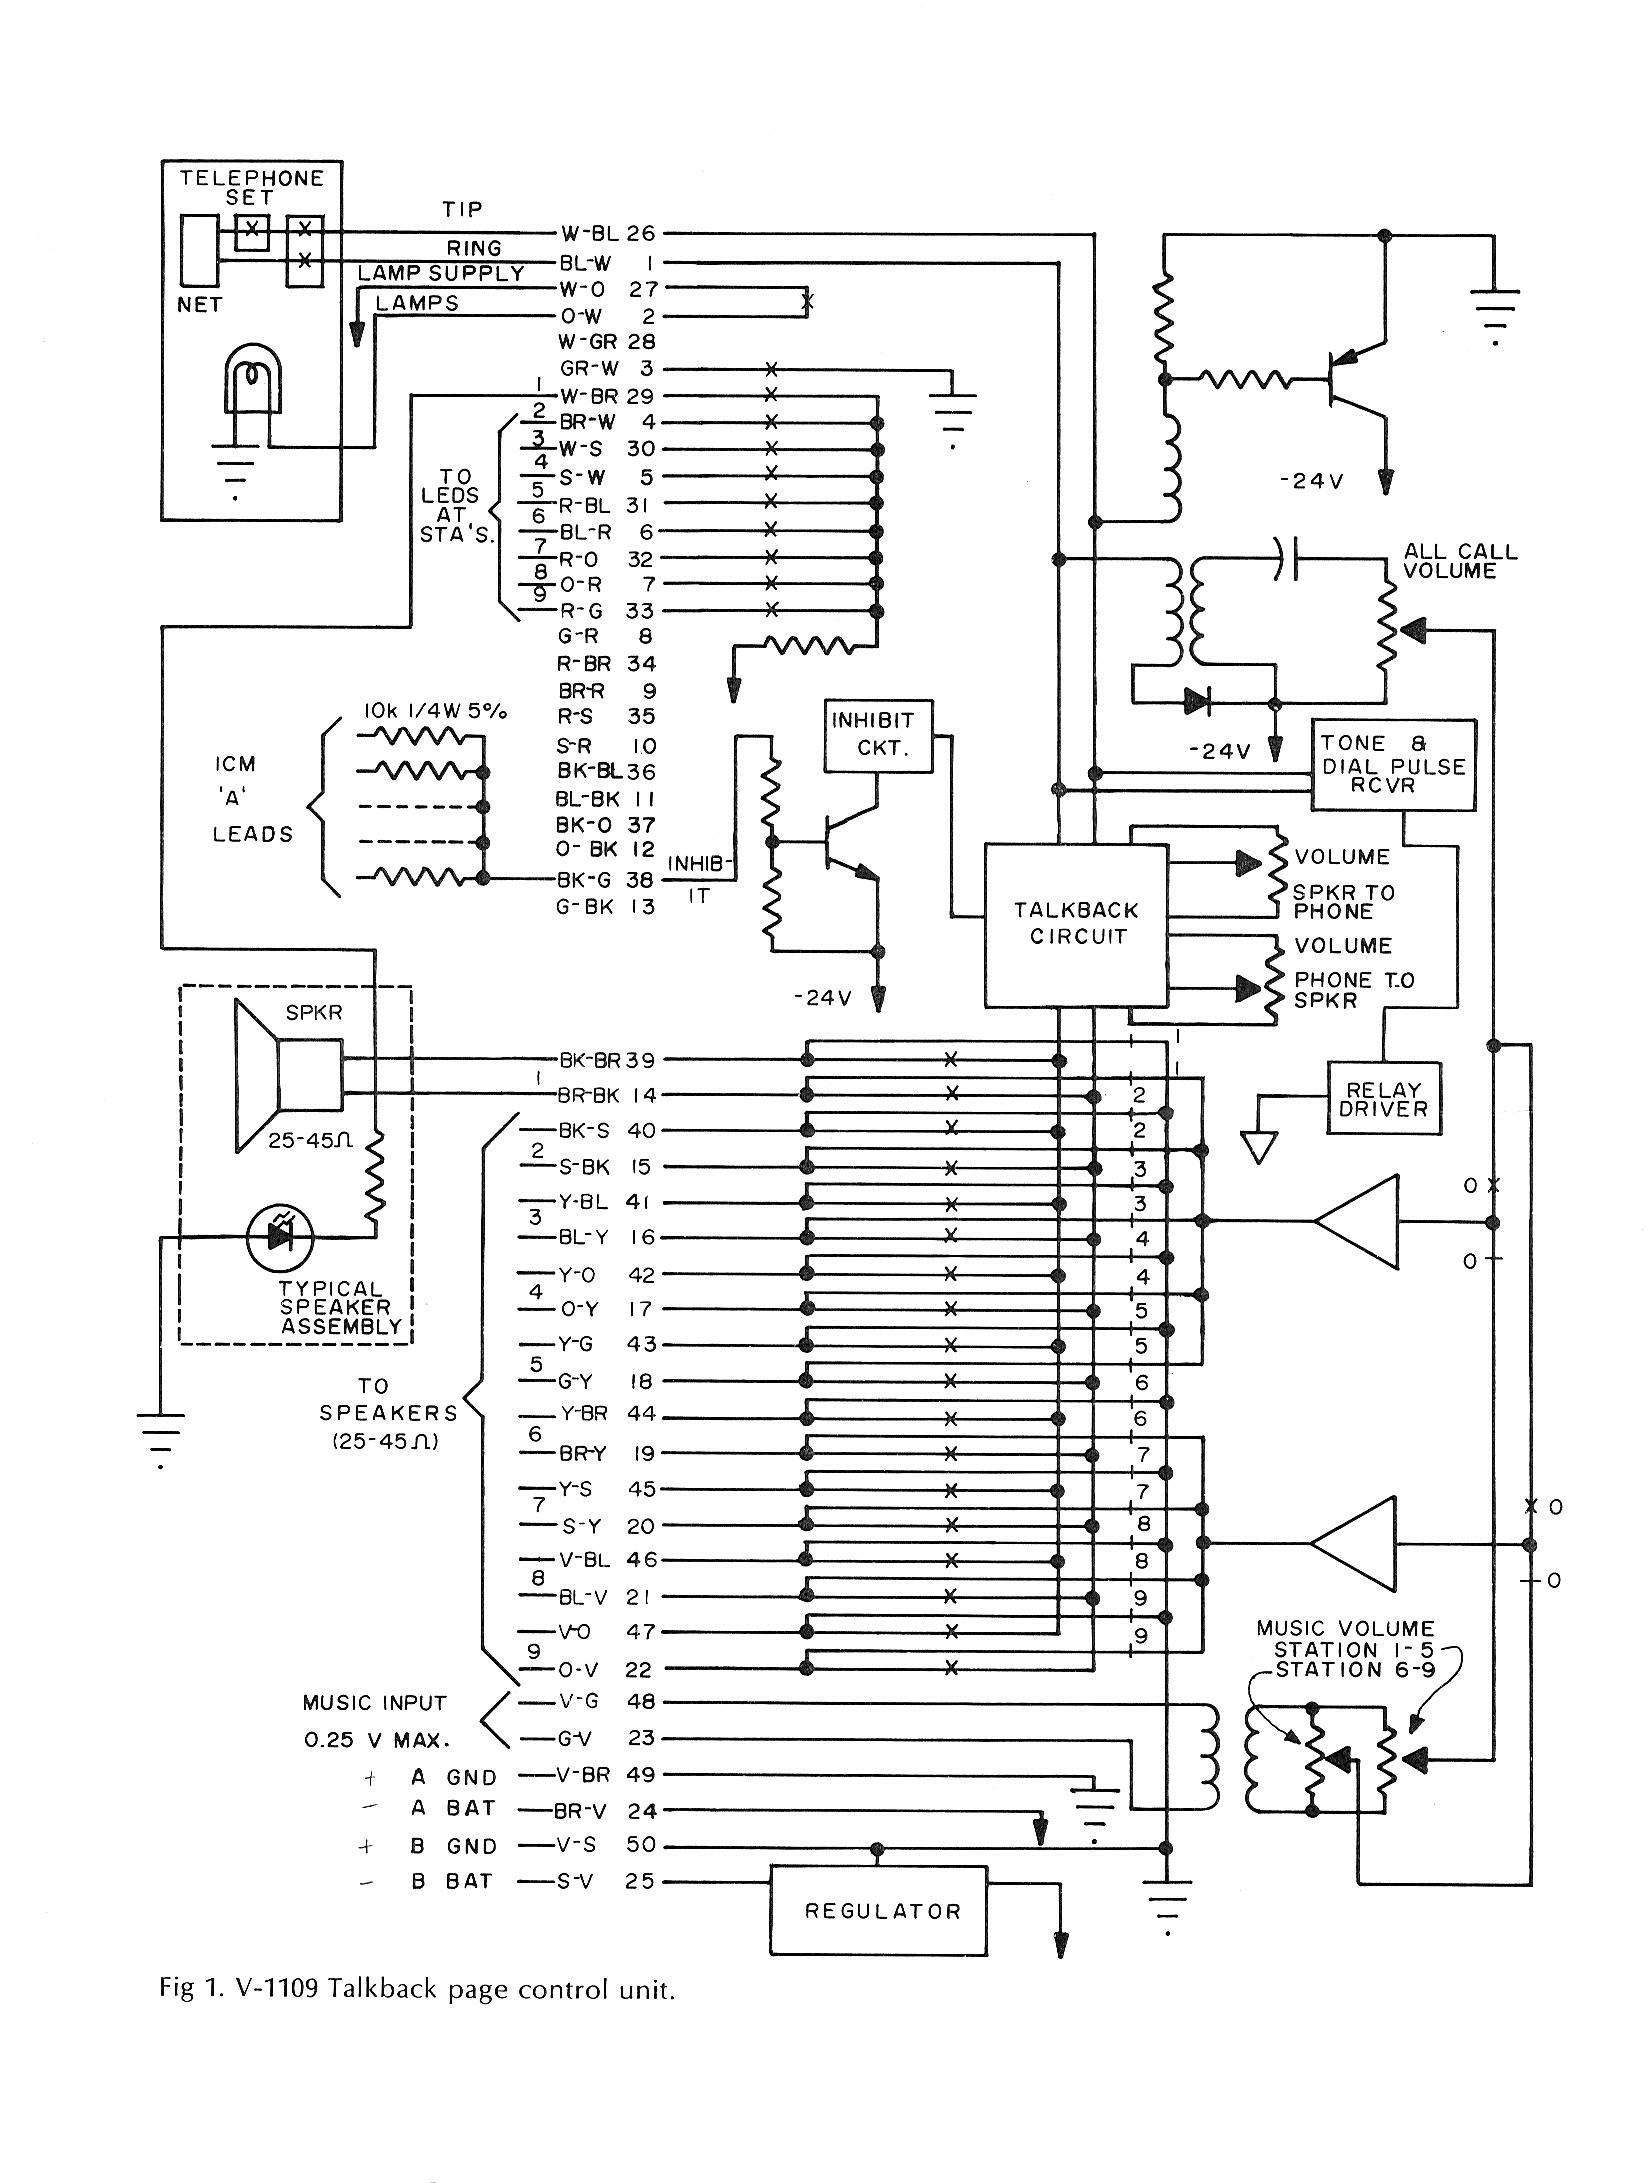 Landline Phone Circuit Diagram | Telephone System Wiring Diagram Detailed Schematics Diagram